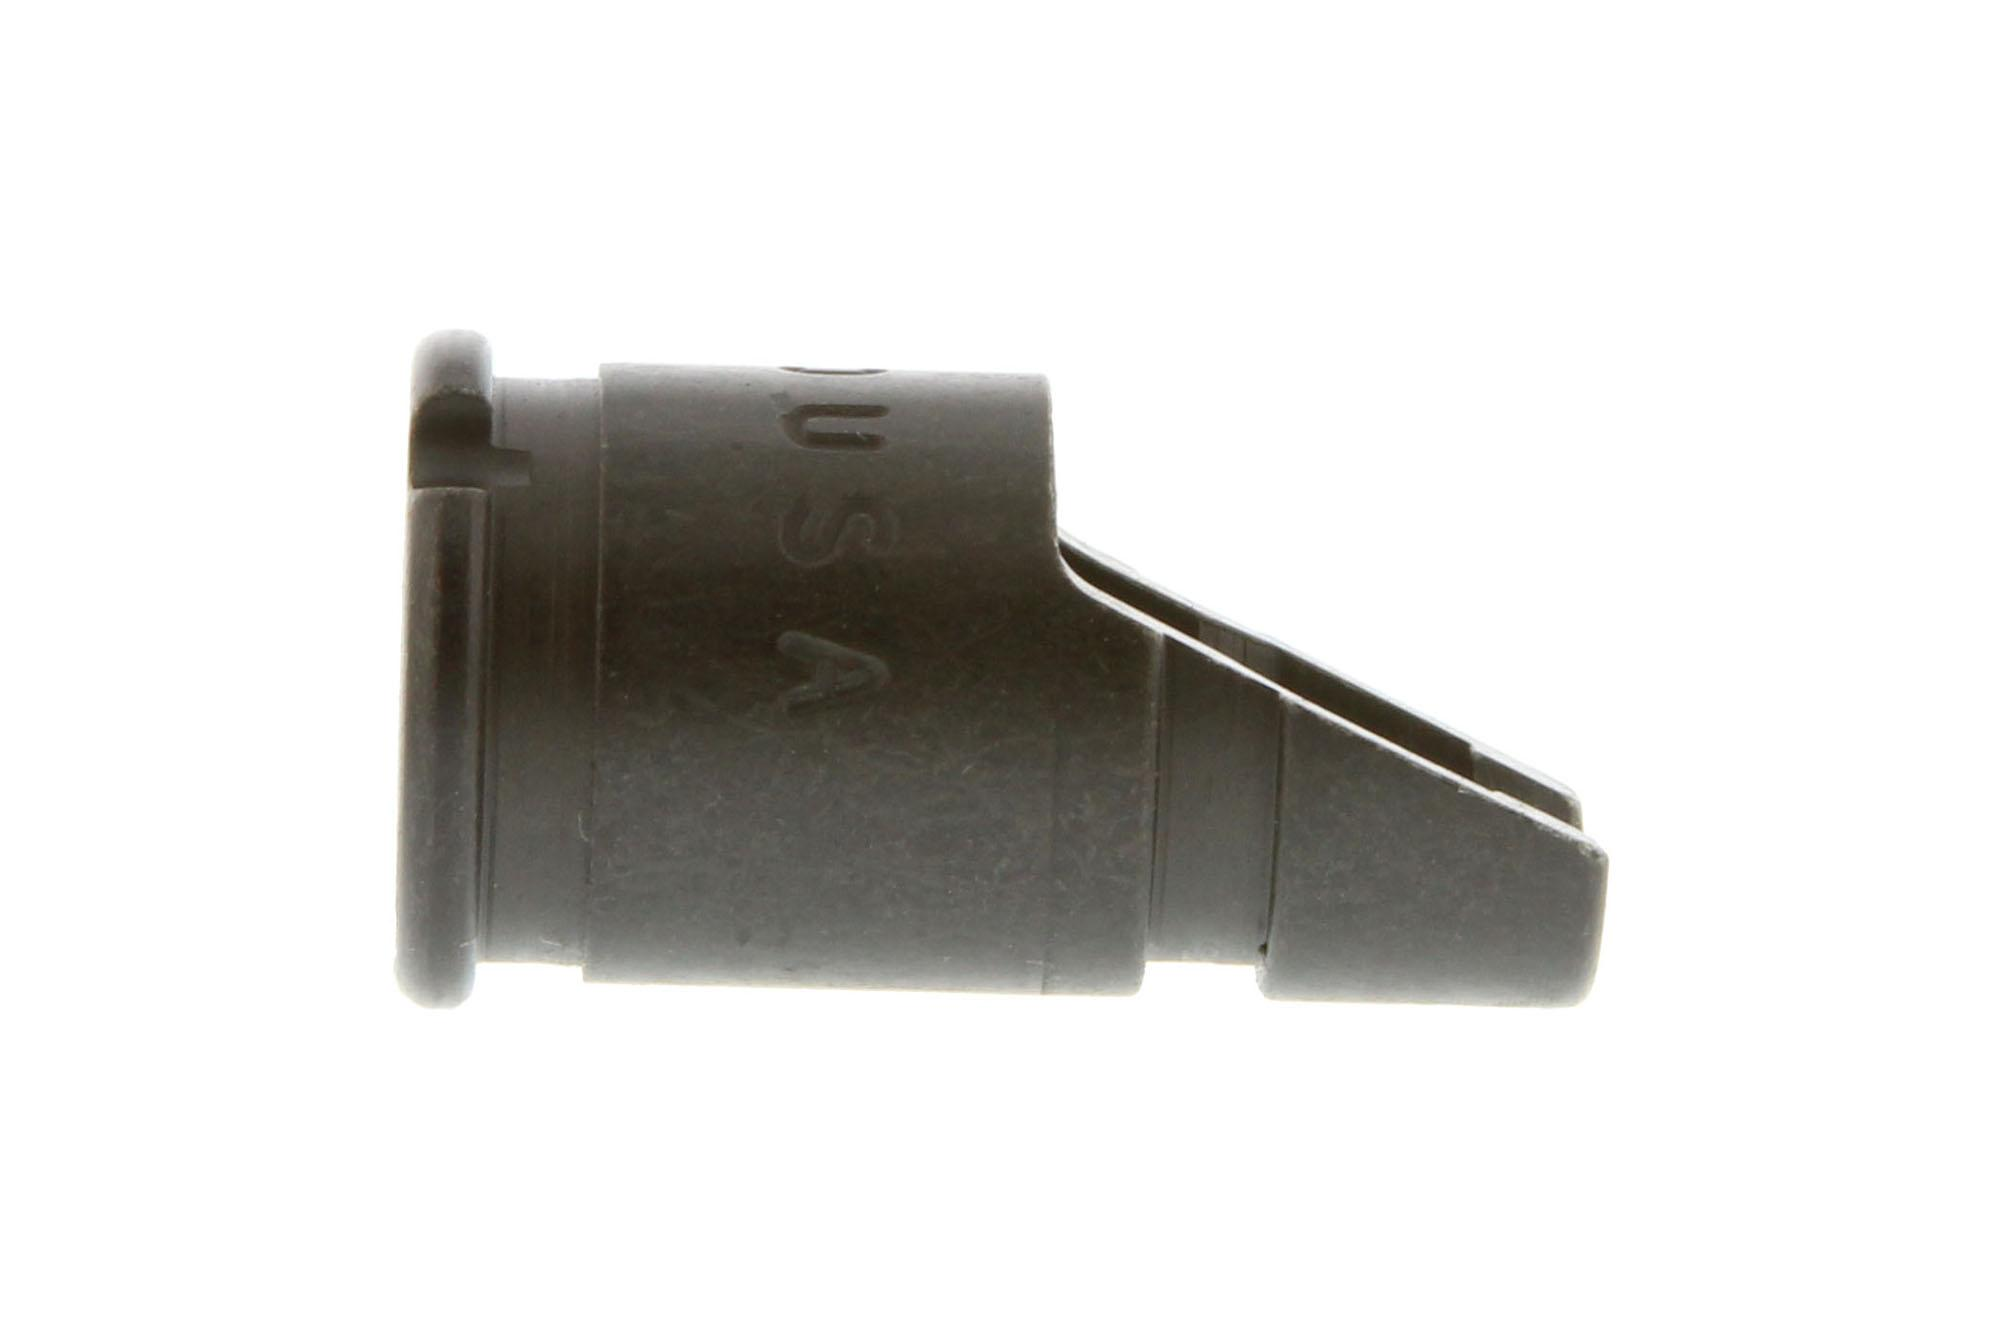 The Tapco AK47 slant muzzle brake is machined from steel with a Phosphate finish